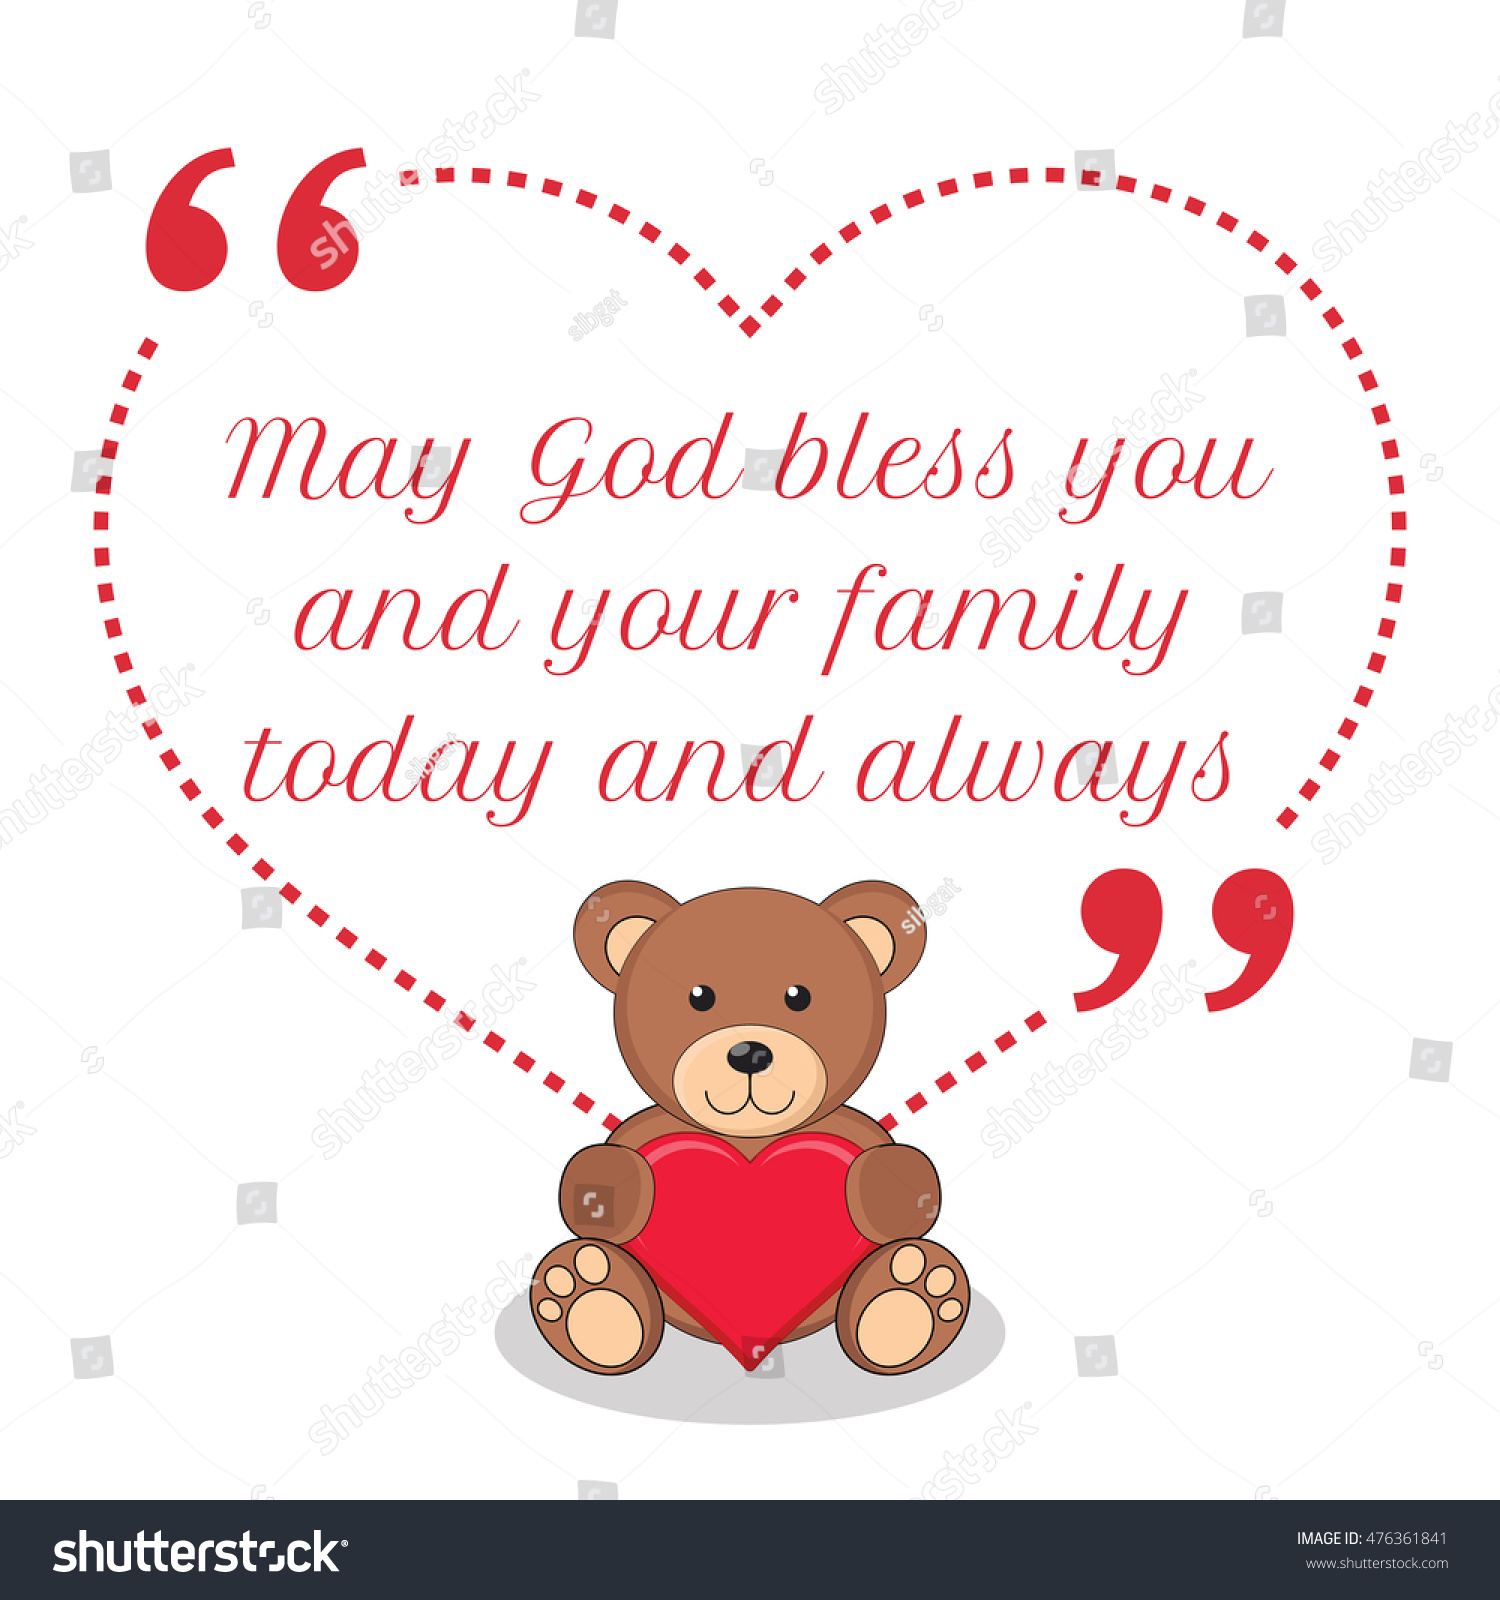 Inspirational Love Quotes Inspirational Love Quote May God Bless Stock Illustration